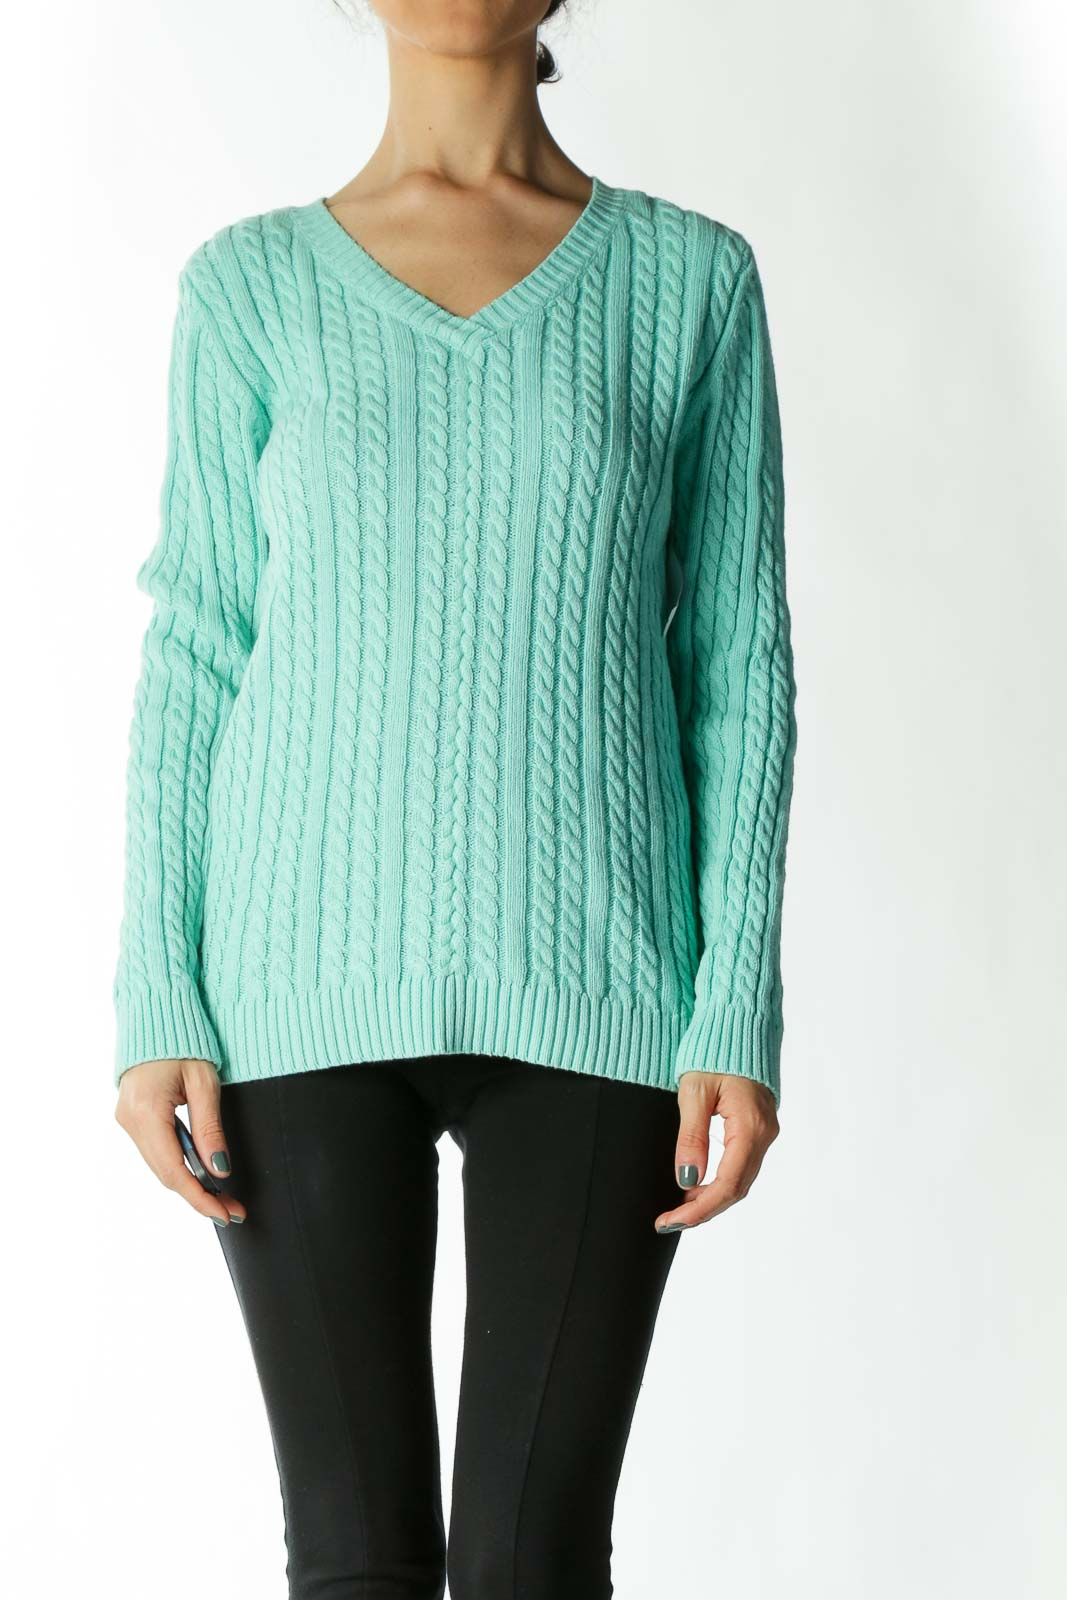 Mint Cable-Knit V-Neck Sweater Front